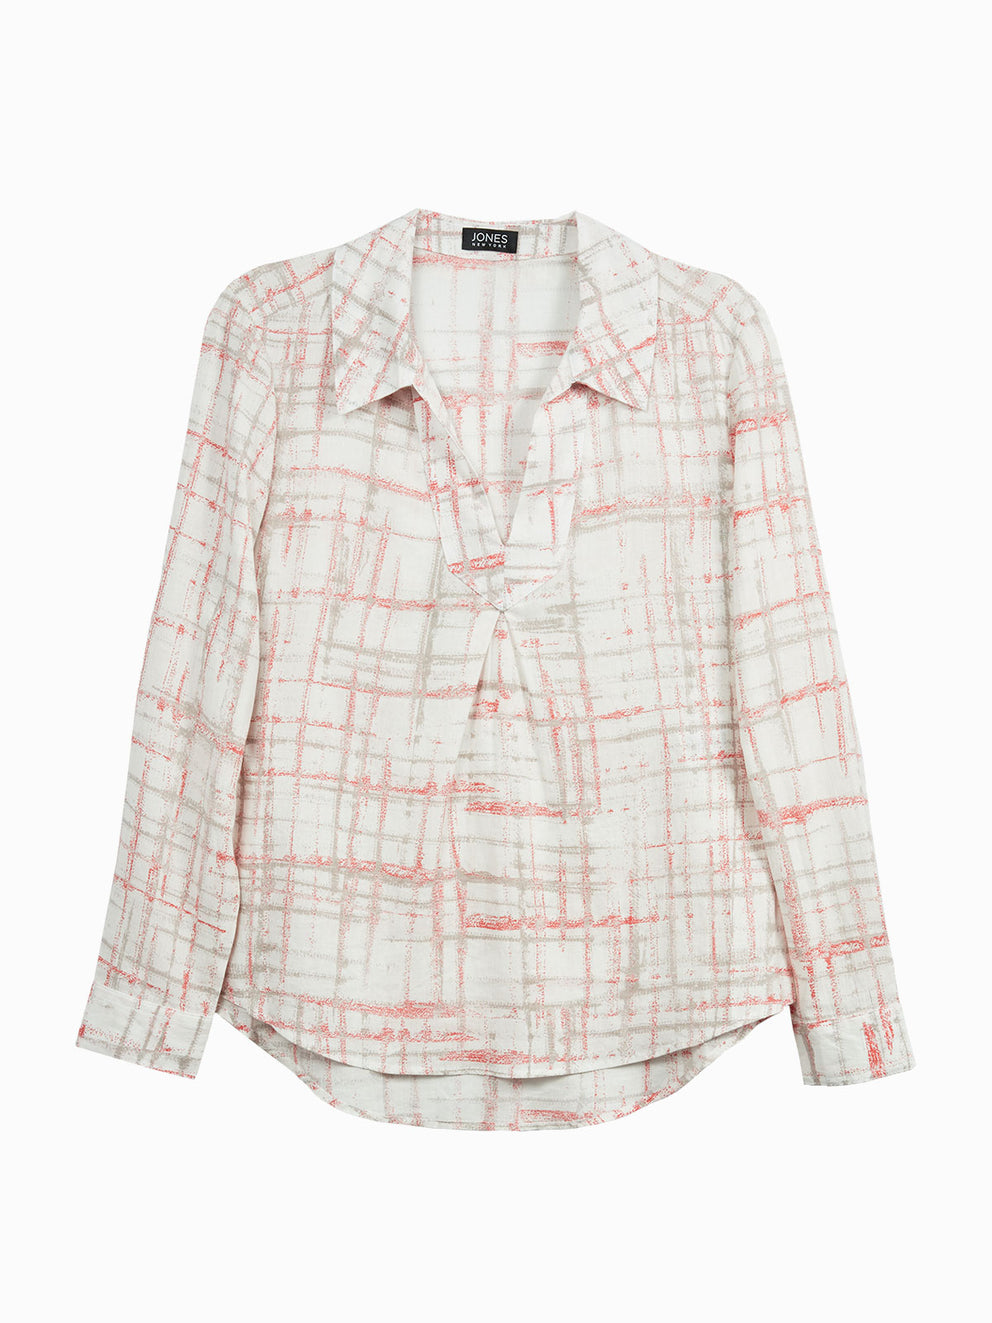 The Jones New York Pleated Popover Top in color Ivory Combo Plaid - Image Position 1